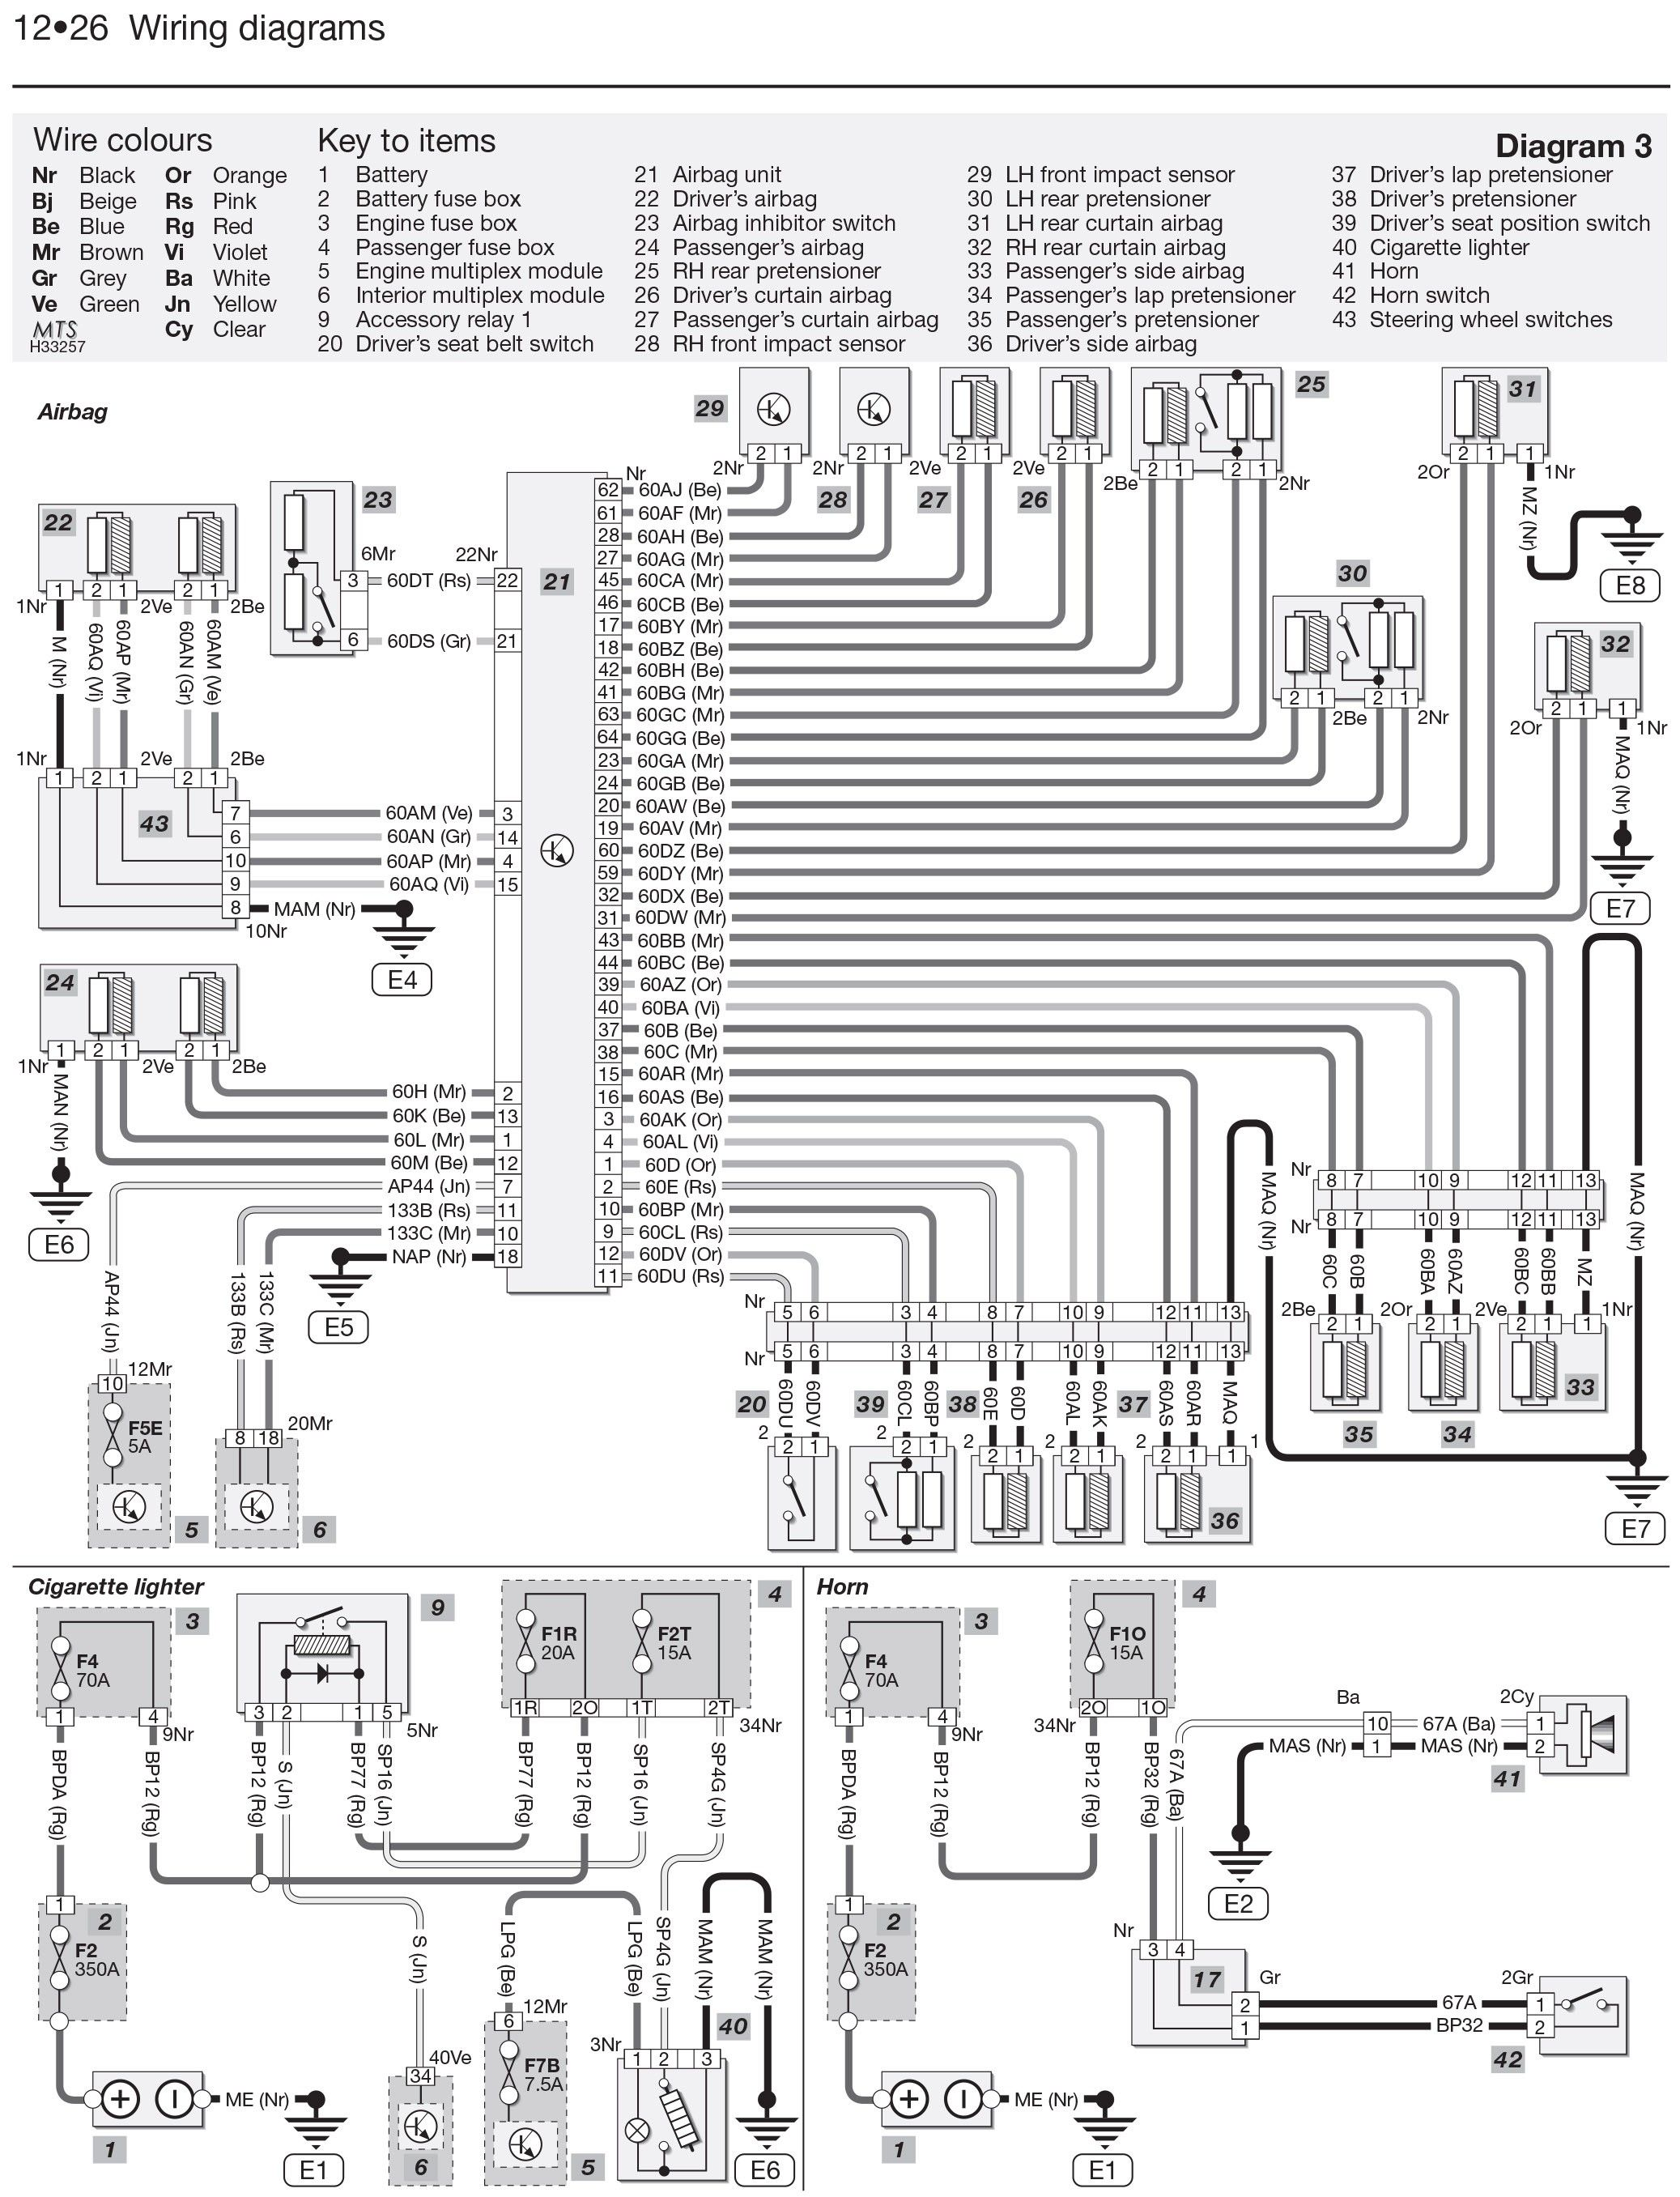 Wiring Diagrams For 2011 Ram 2500 Free Download